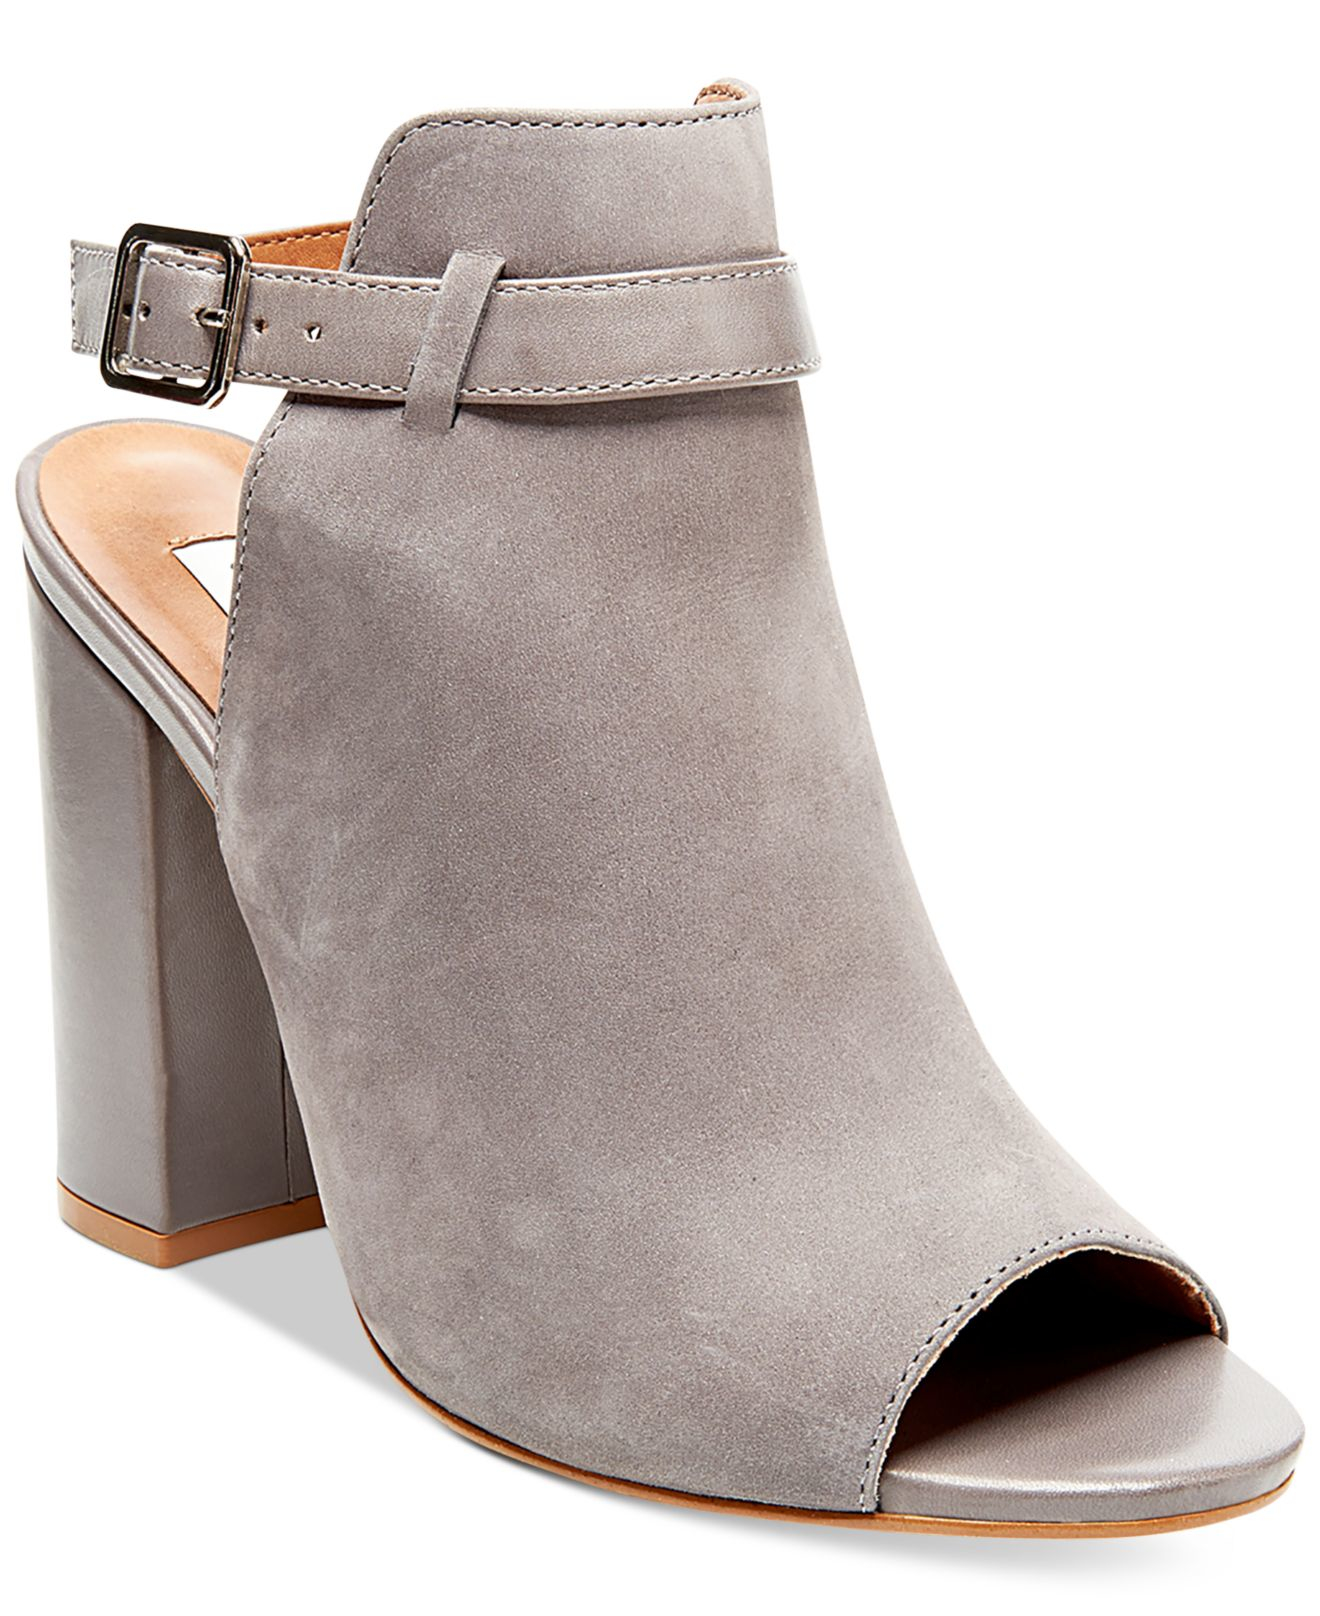 Macys Womens Steve Madden Shoes